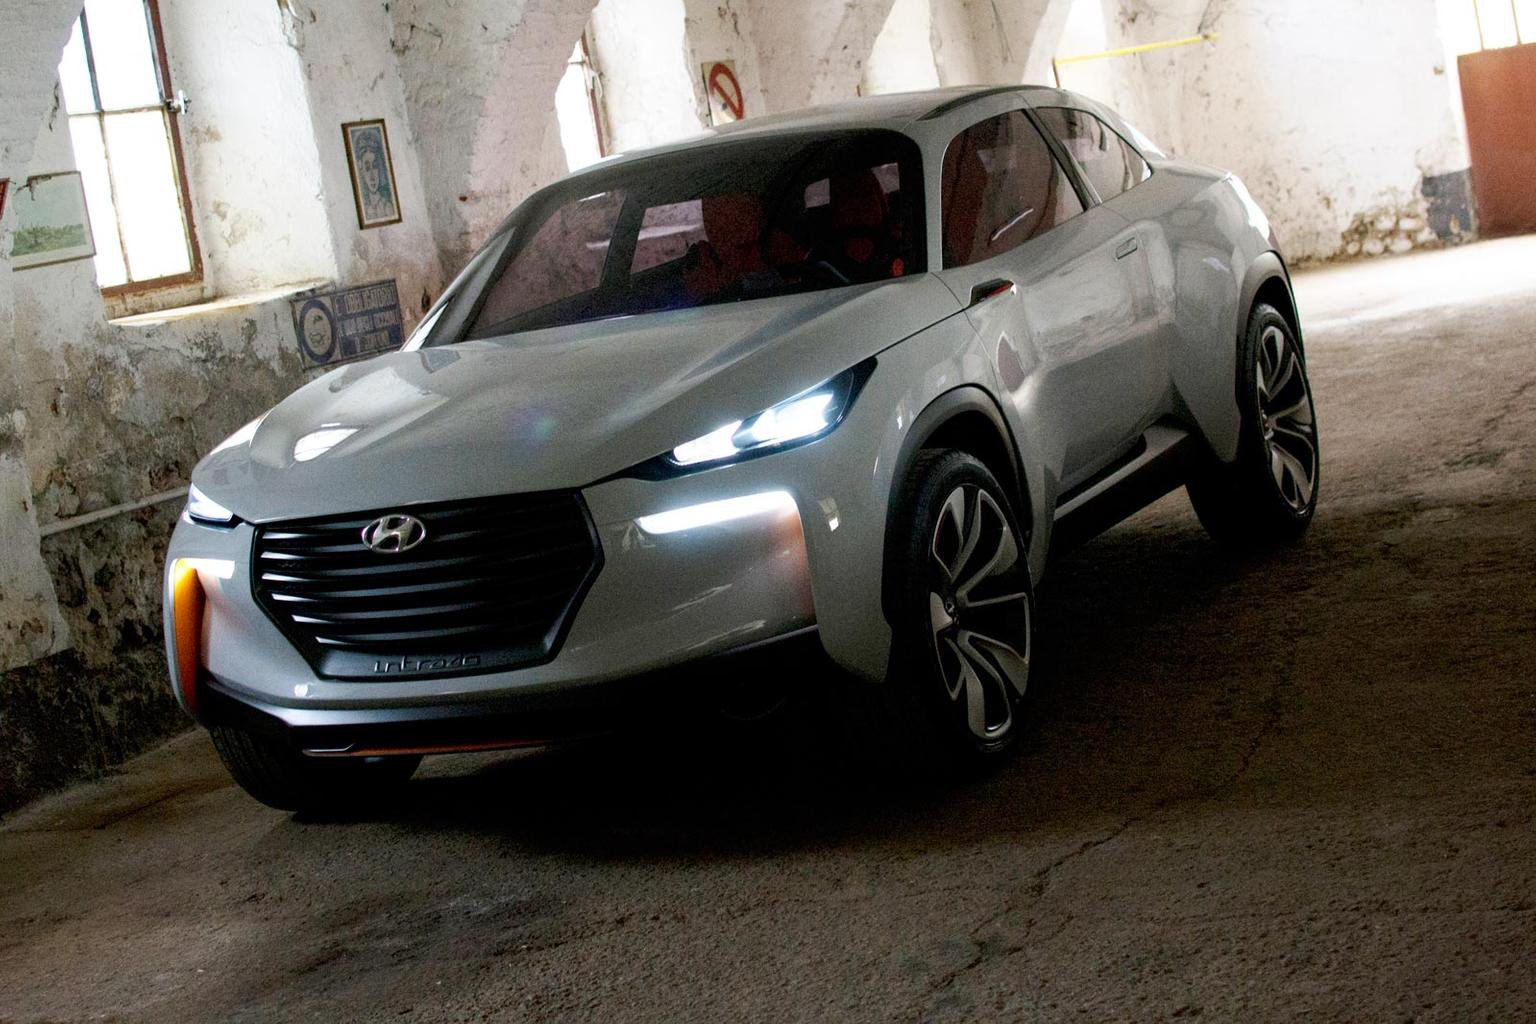 Hyundai: '22 new models by 2017'